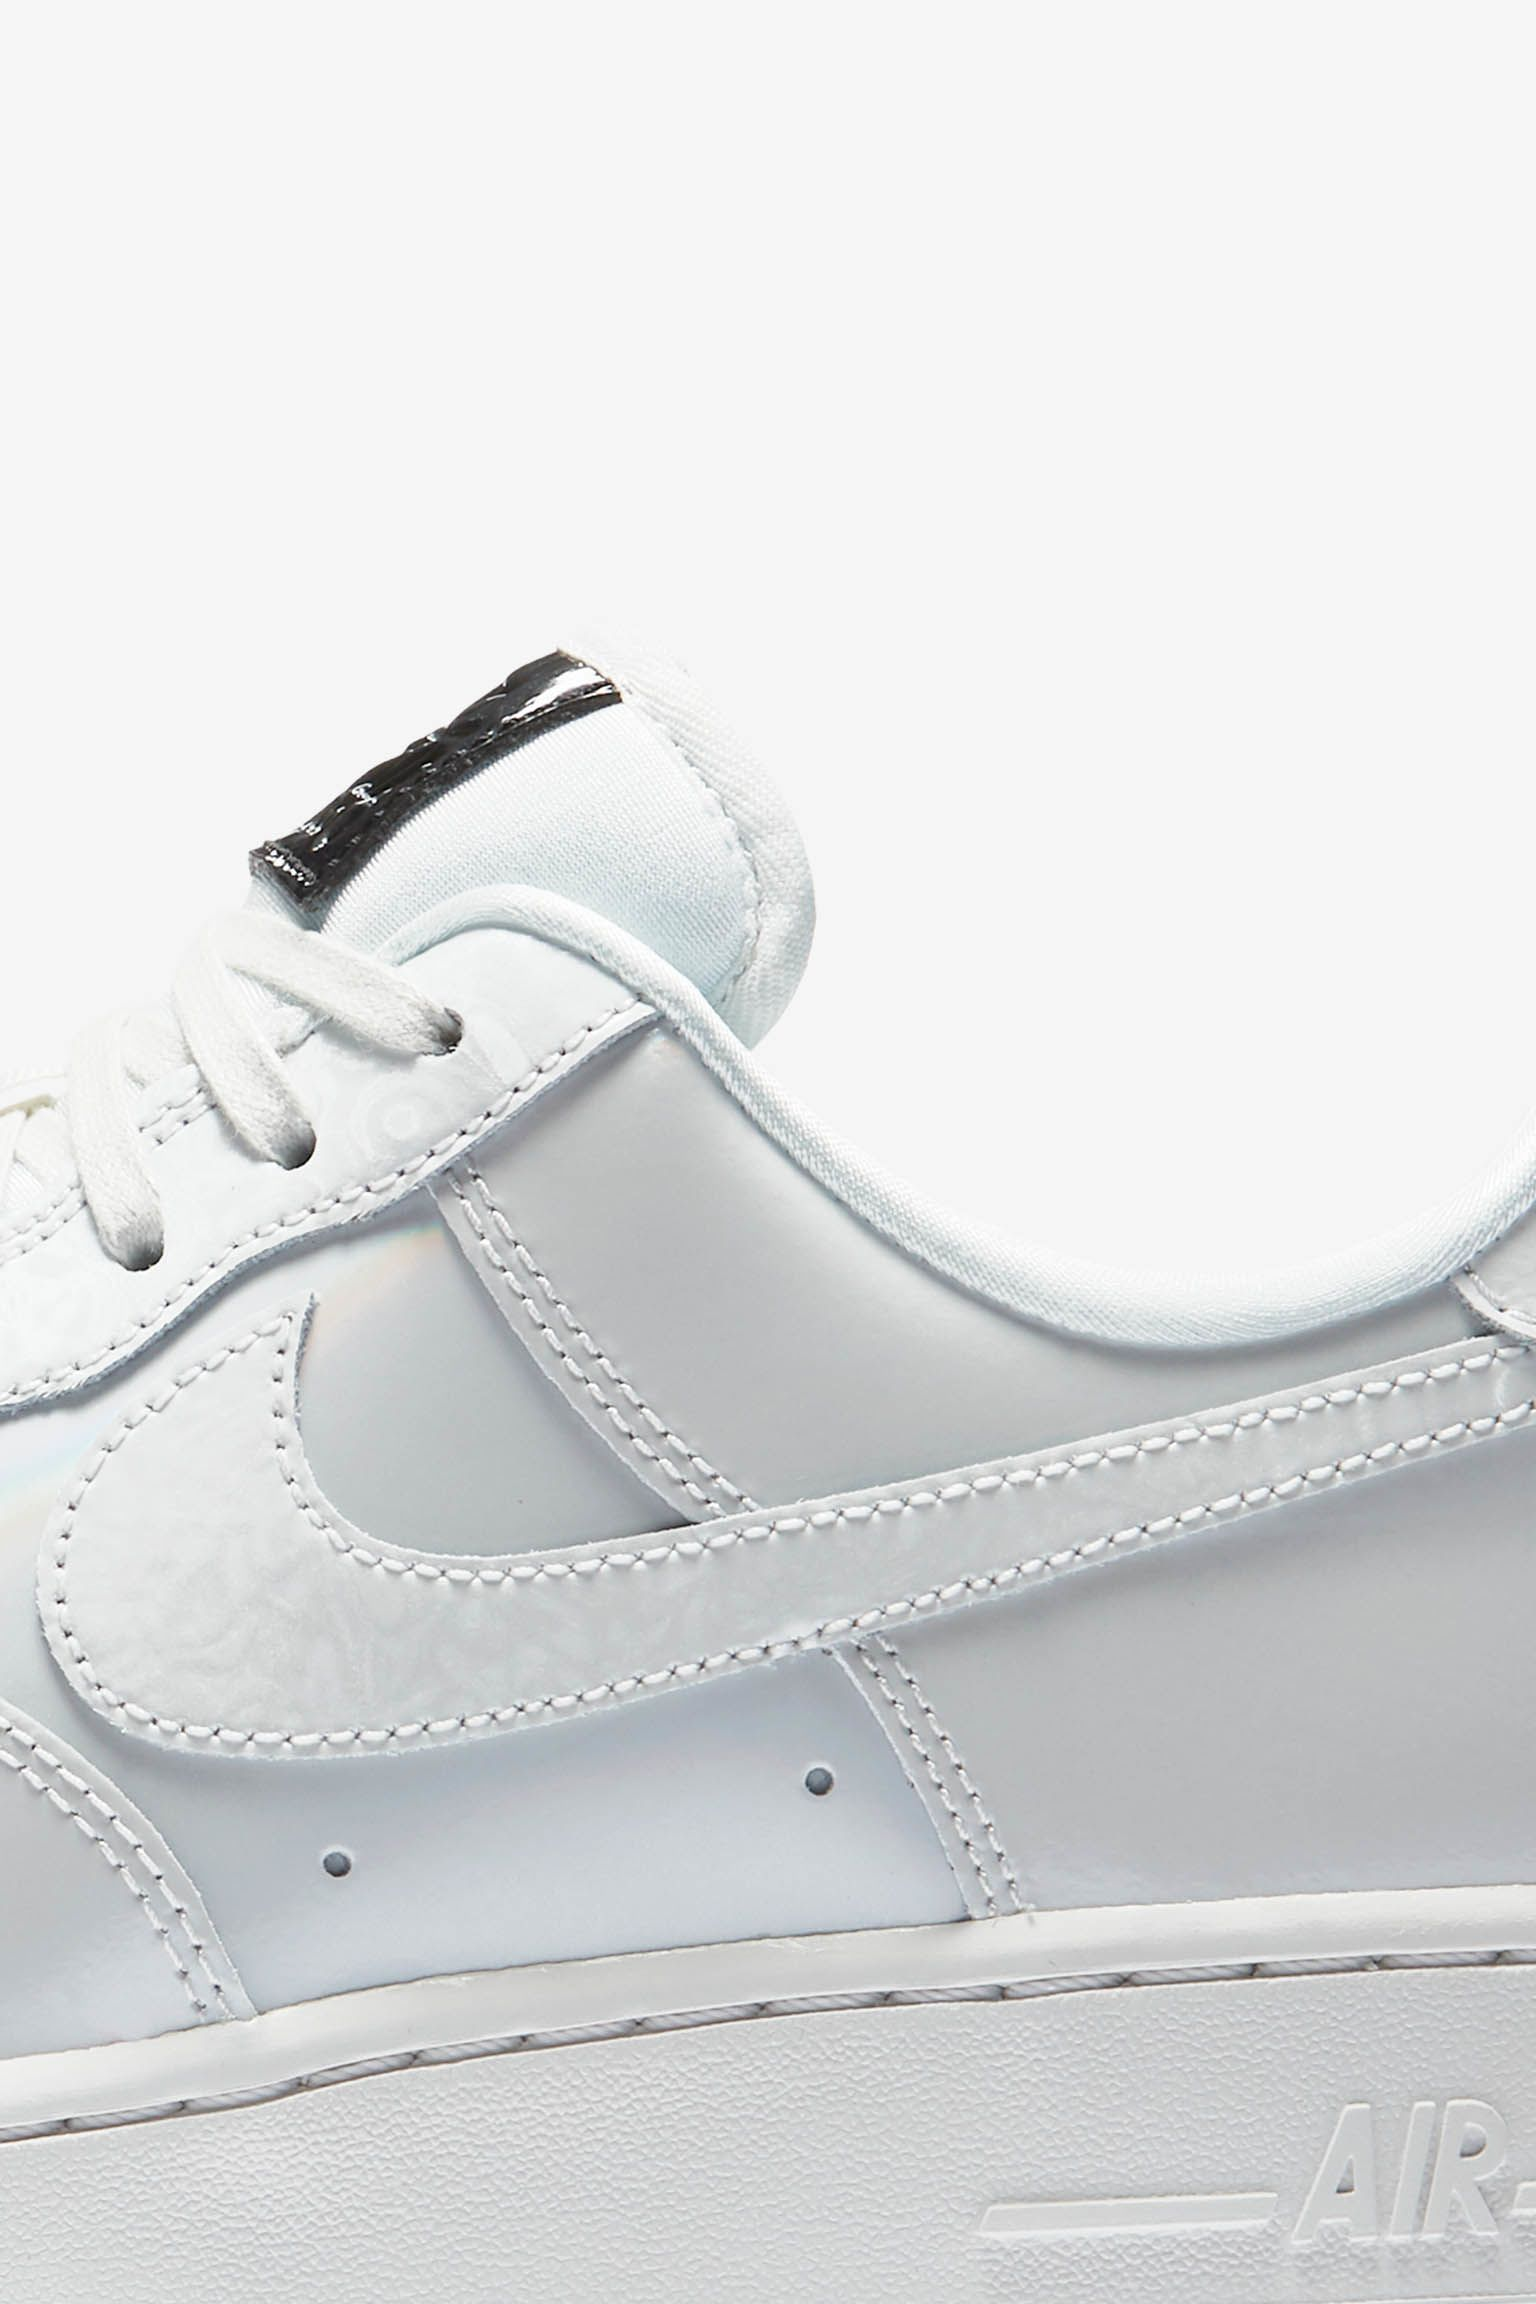 Nike Women's Air Force 1 Low 'Summit White & Black' Release Date